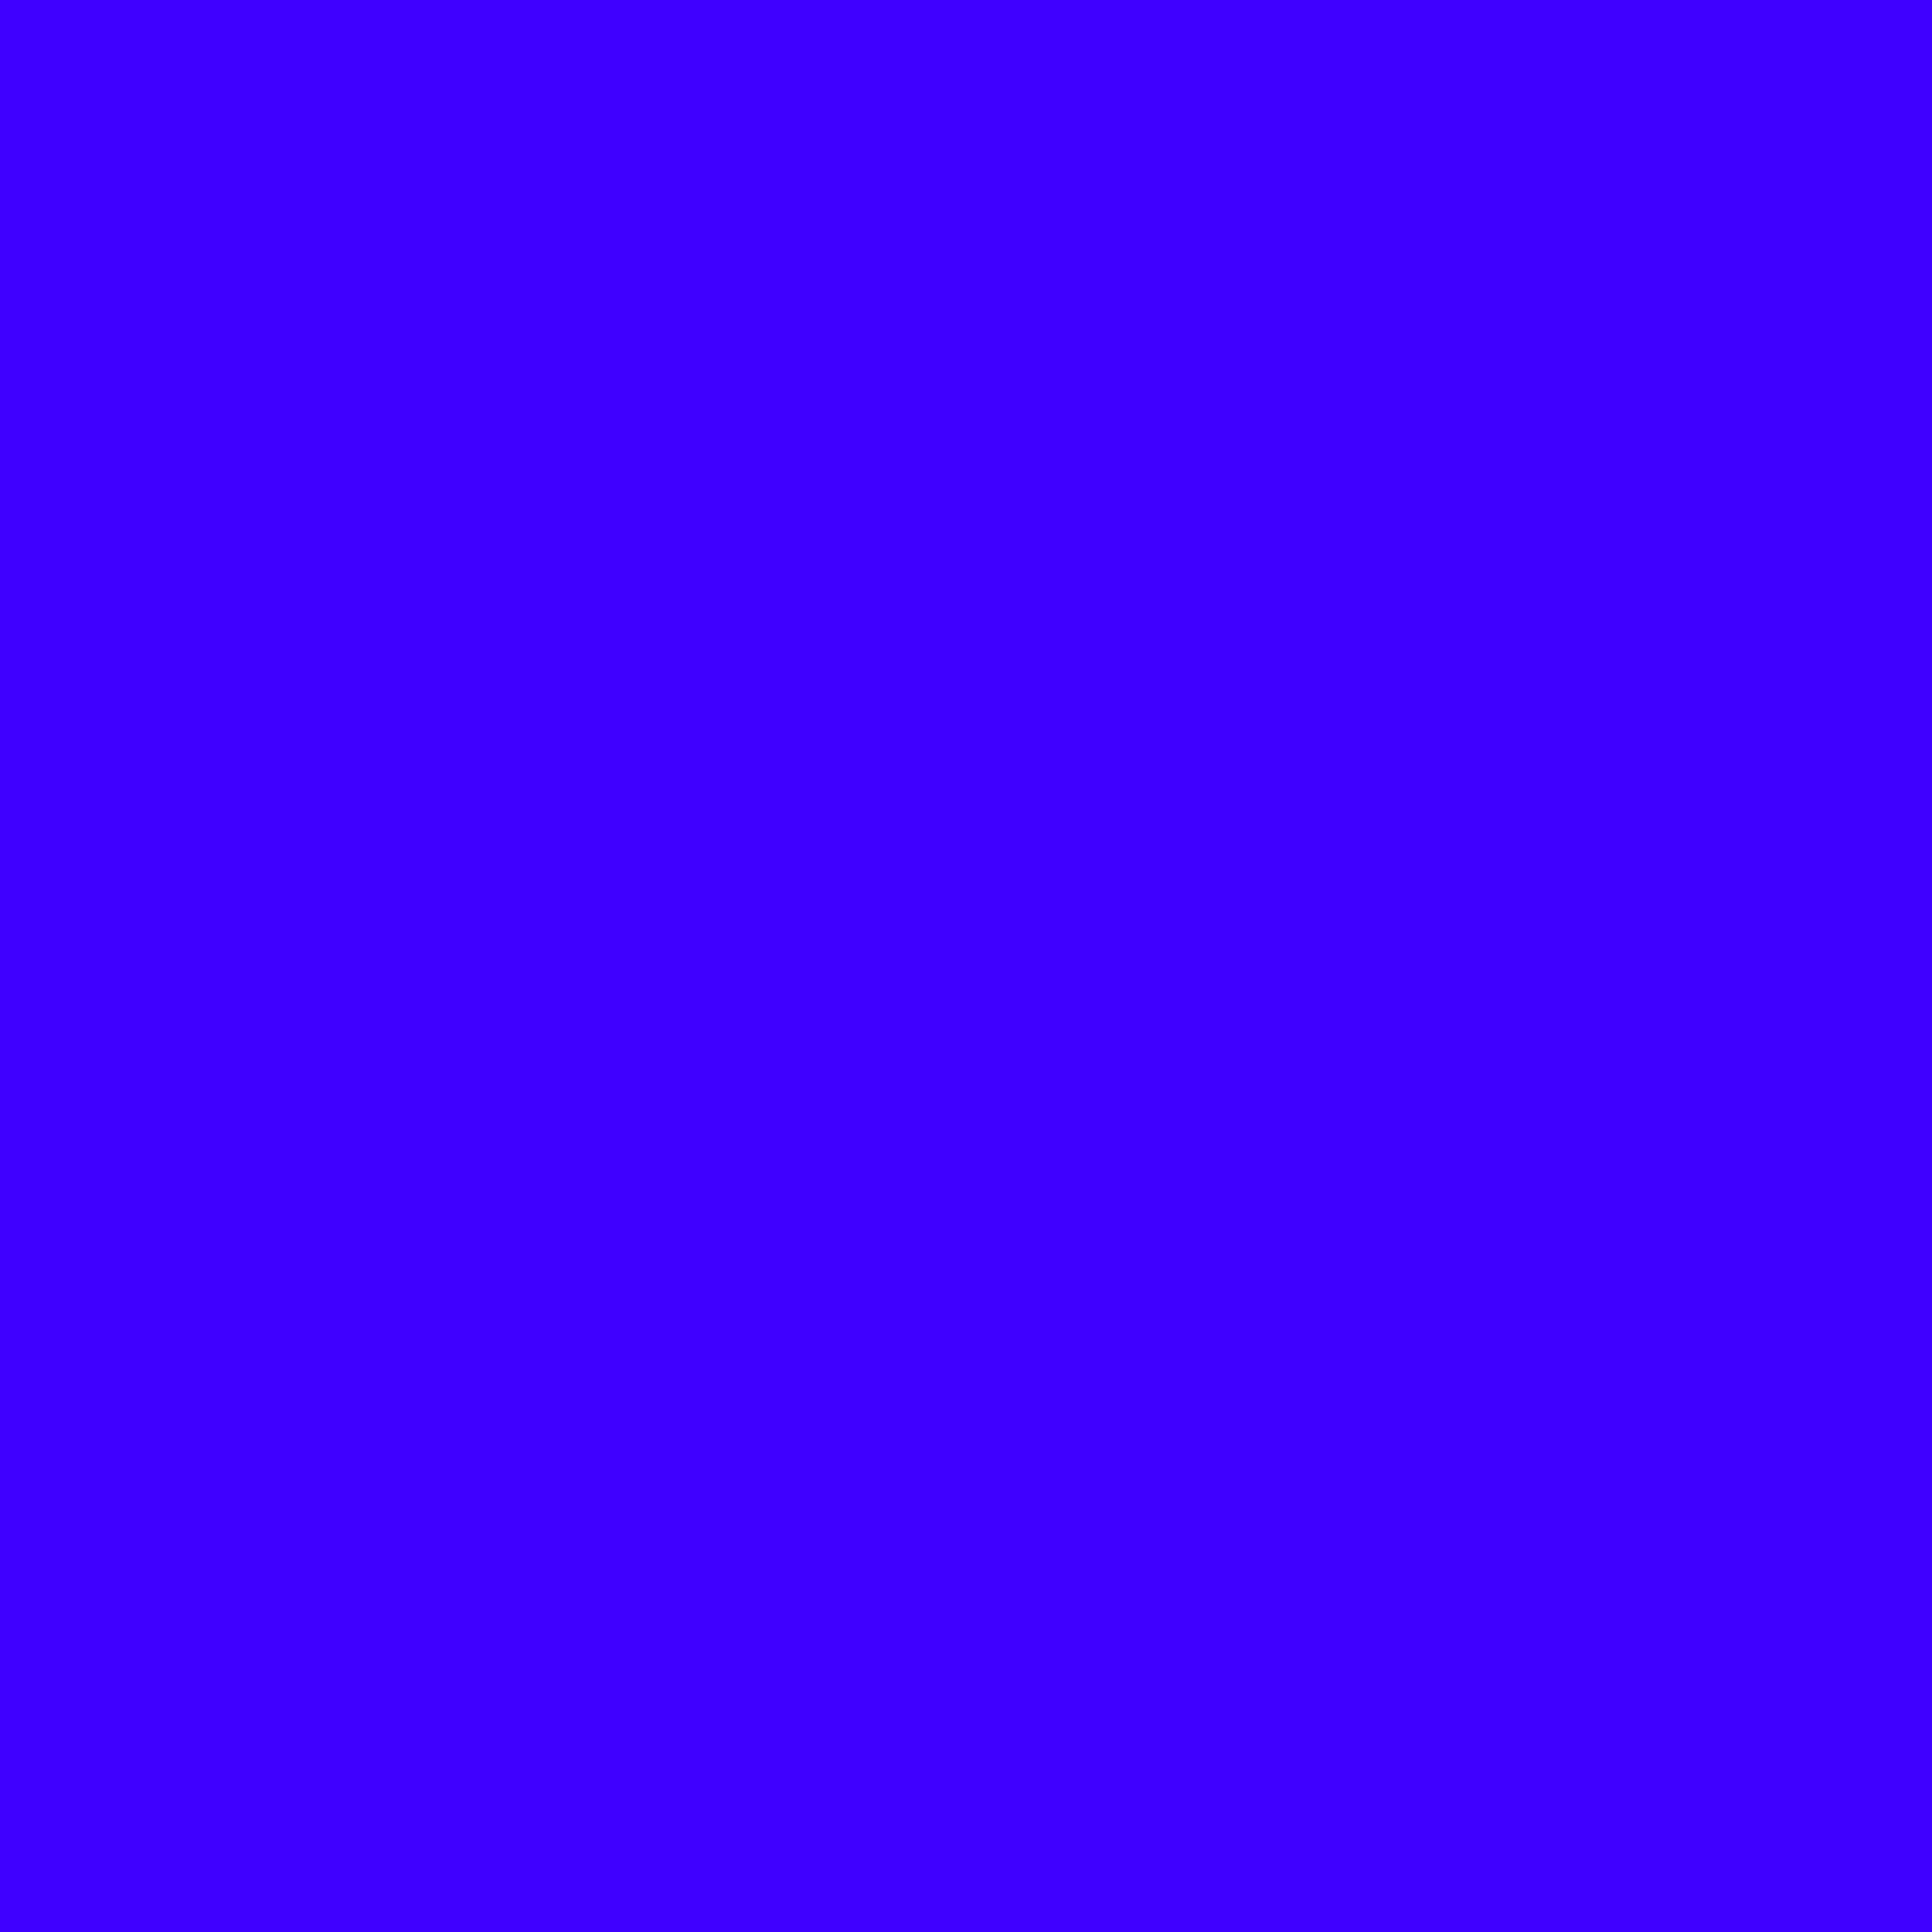 2048x2048 Electric Ultramarine Solid Color Background